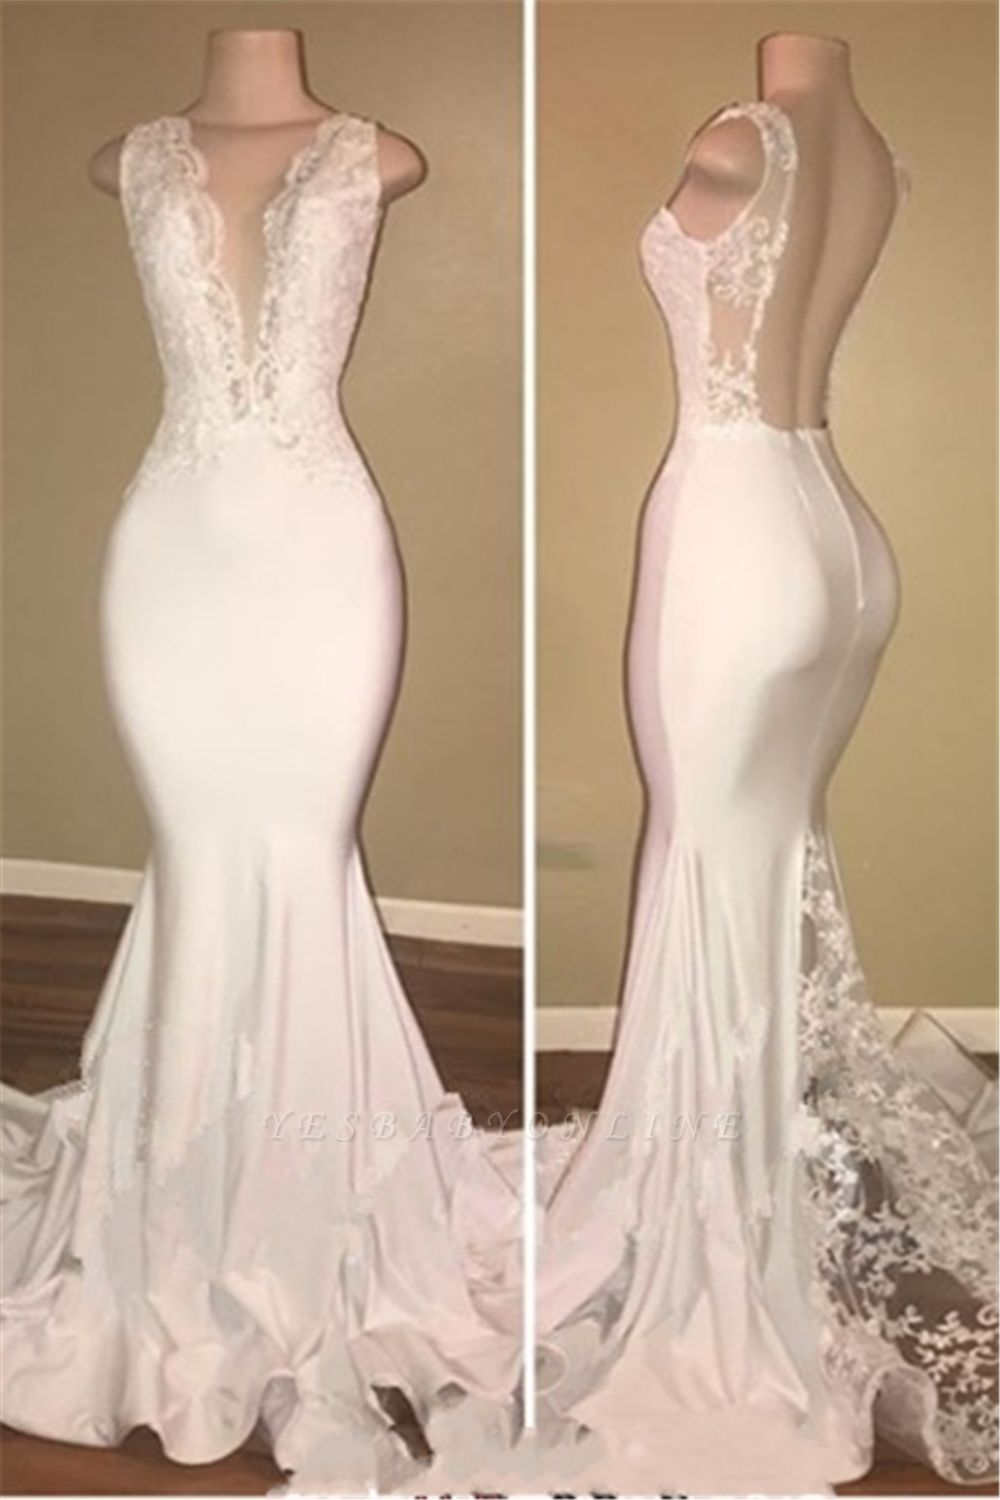 Elegant Sleeveless Long Lace Prom Dresses | V-neck Backless Mermaid Evening Gowns